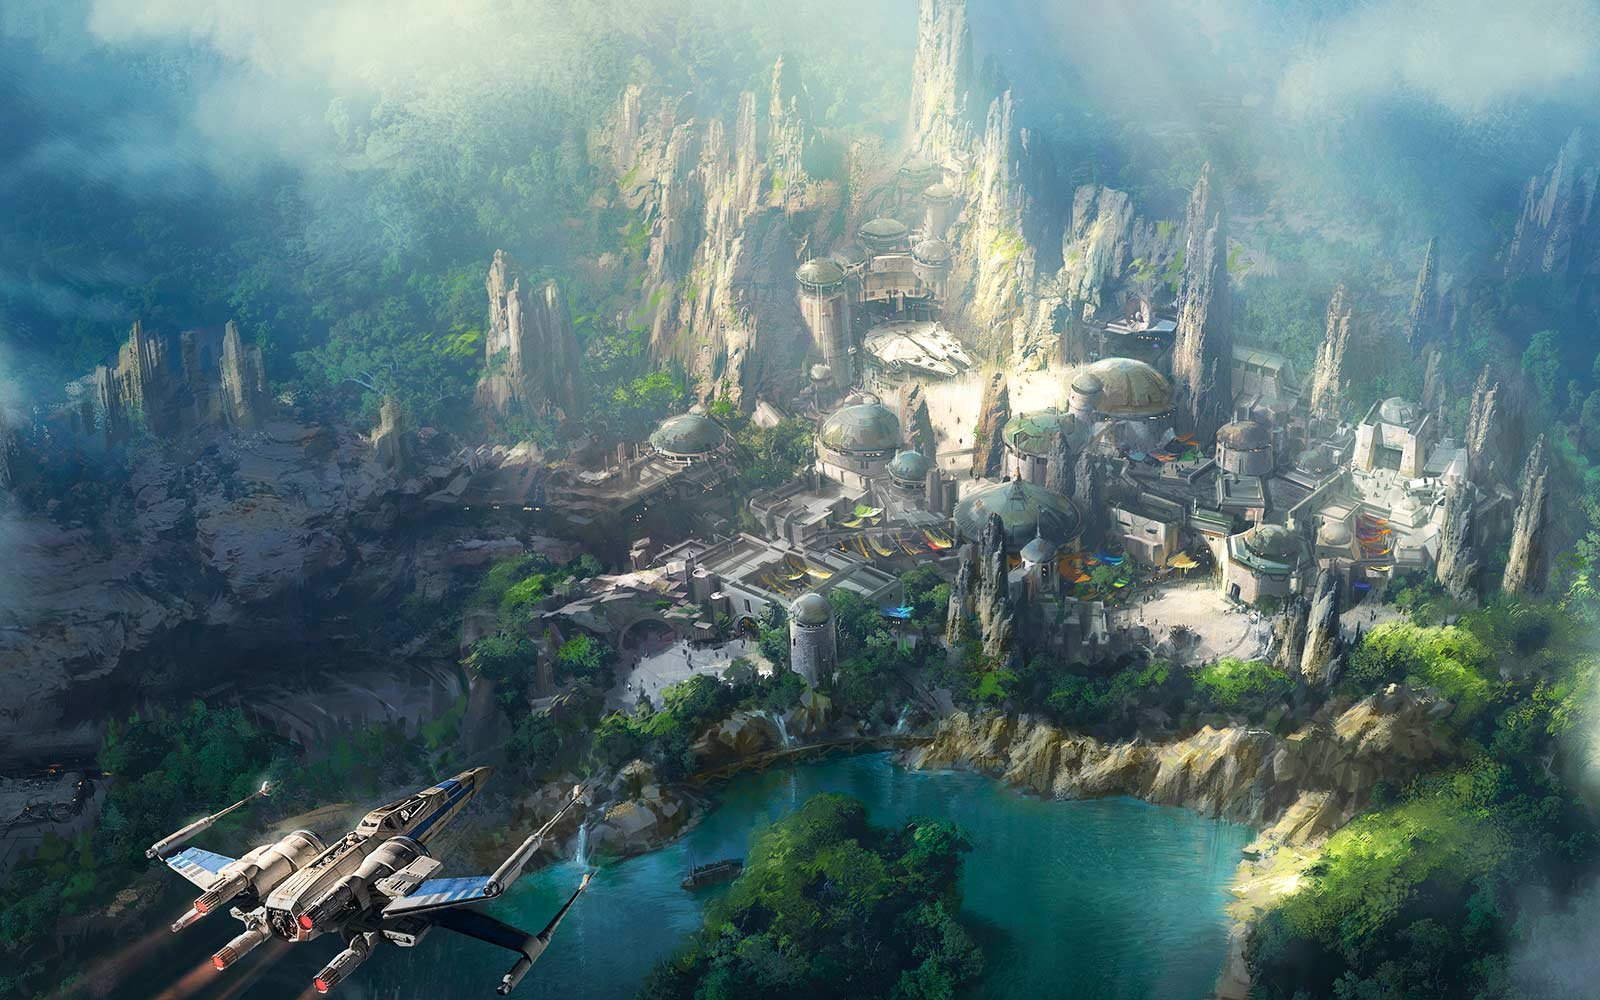 Star Wars land will open in 2019